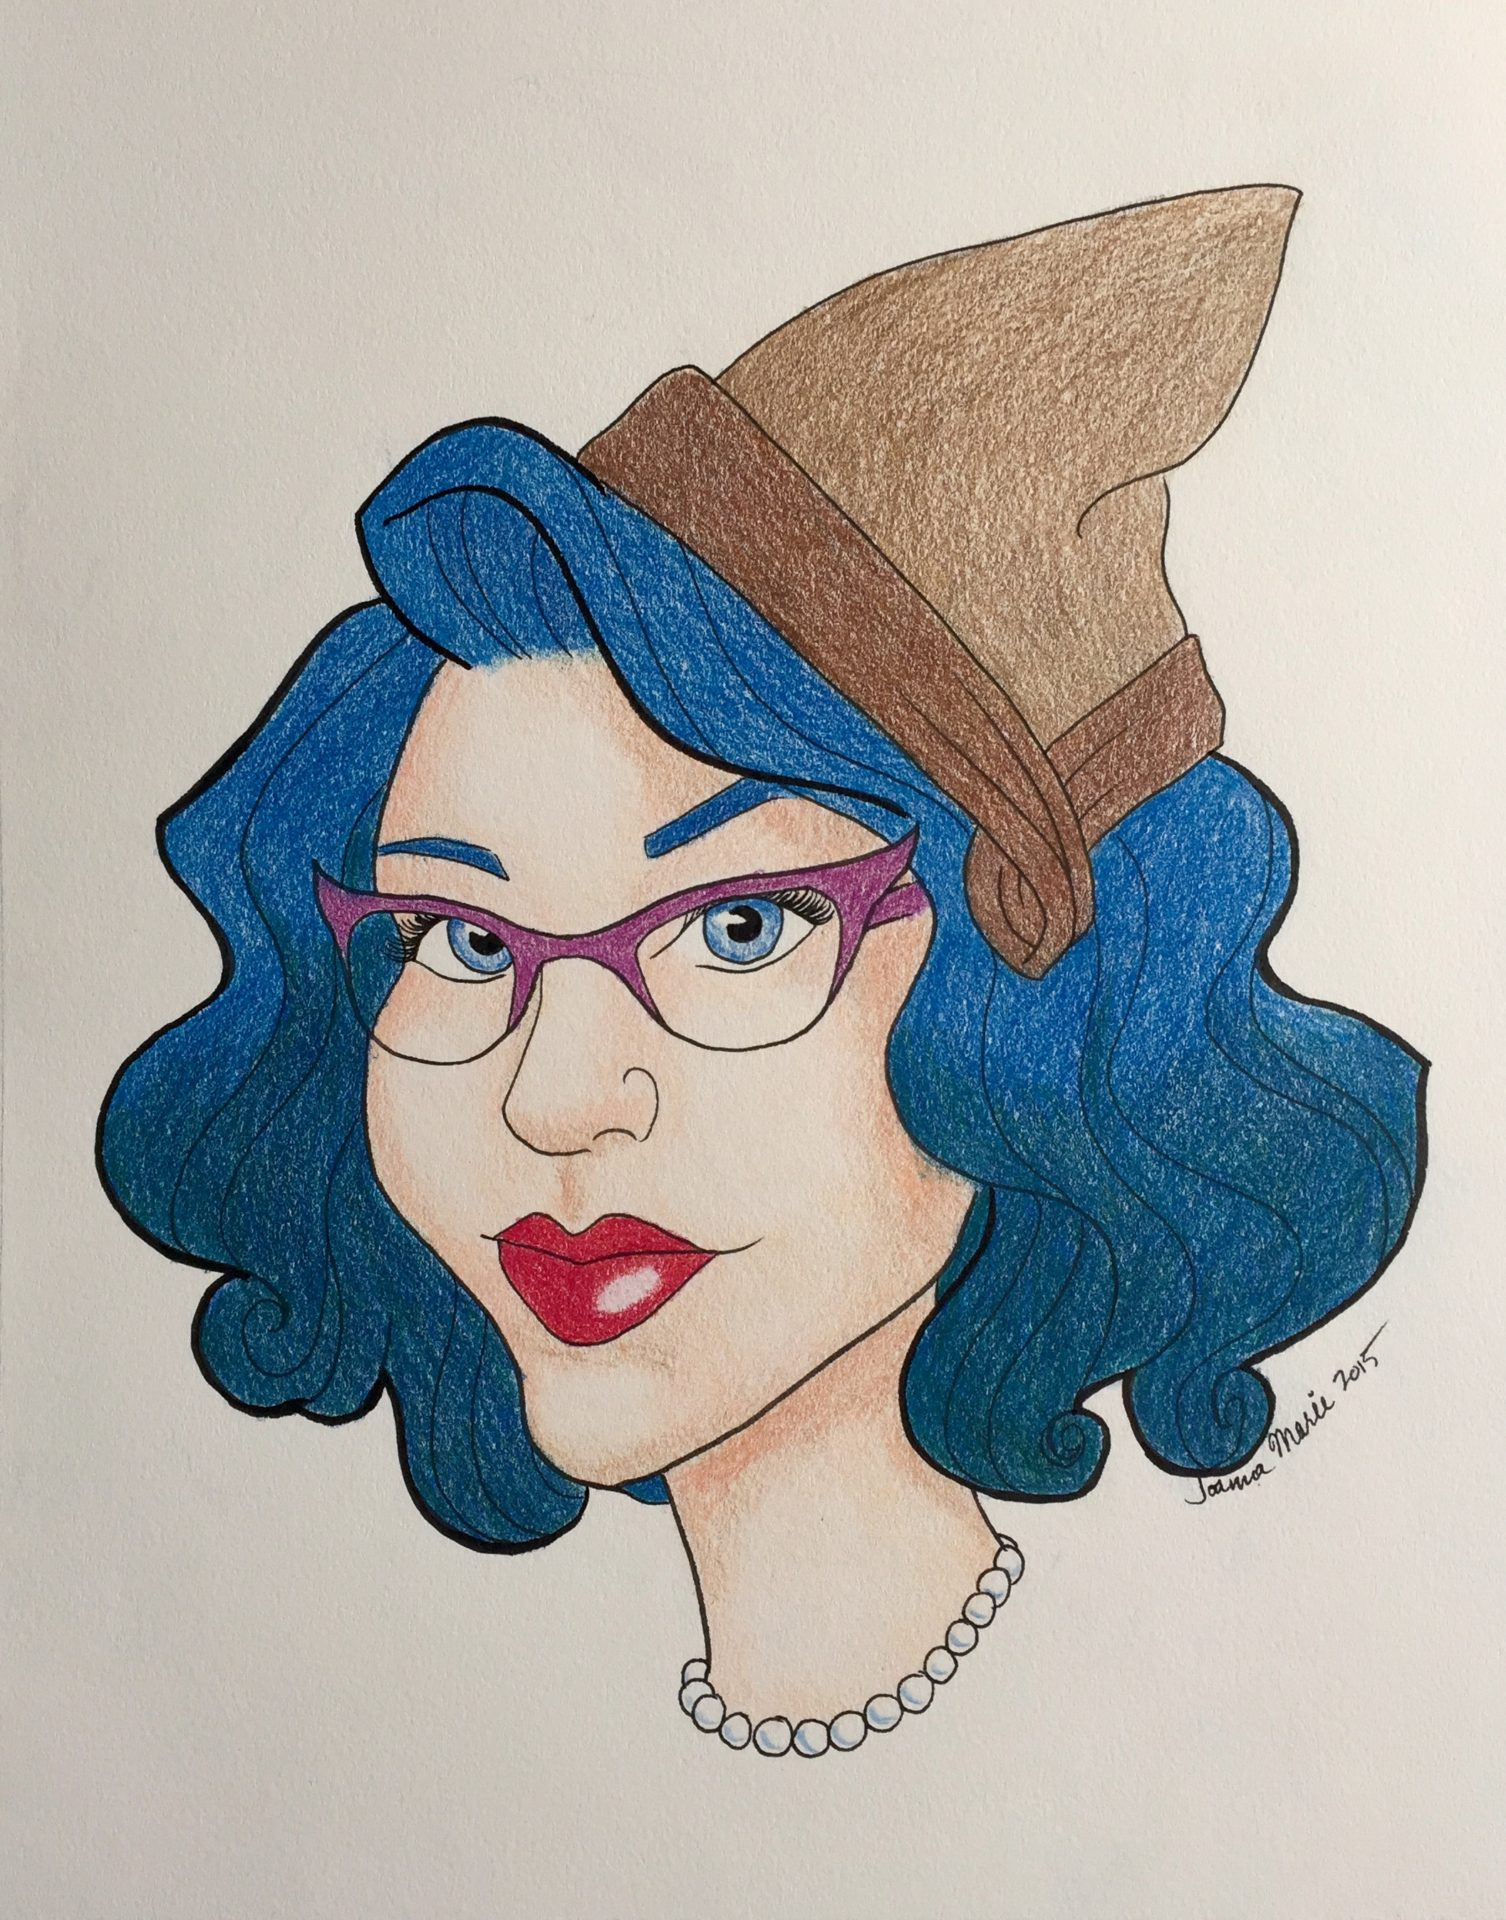 Glam 1930s Schoolteacher, 2015, 8x10, Colored Pencil